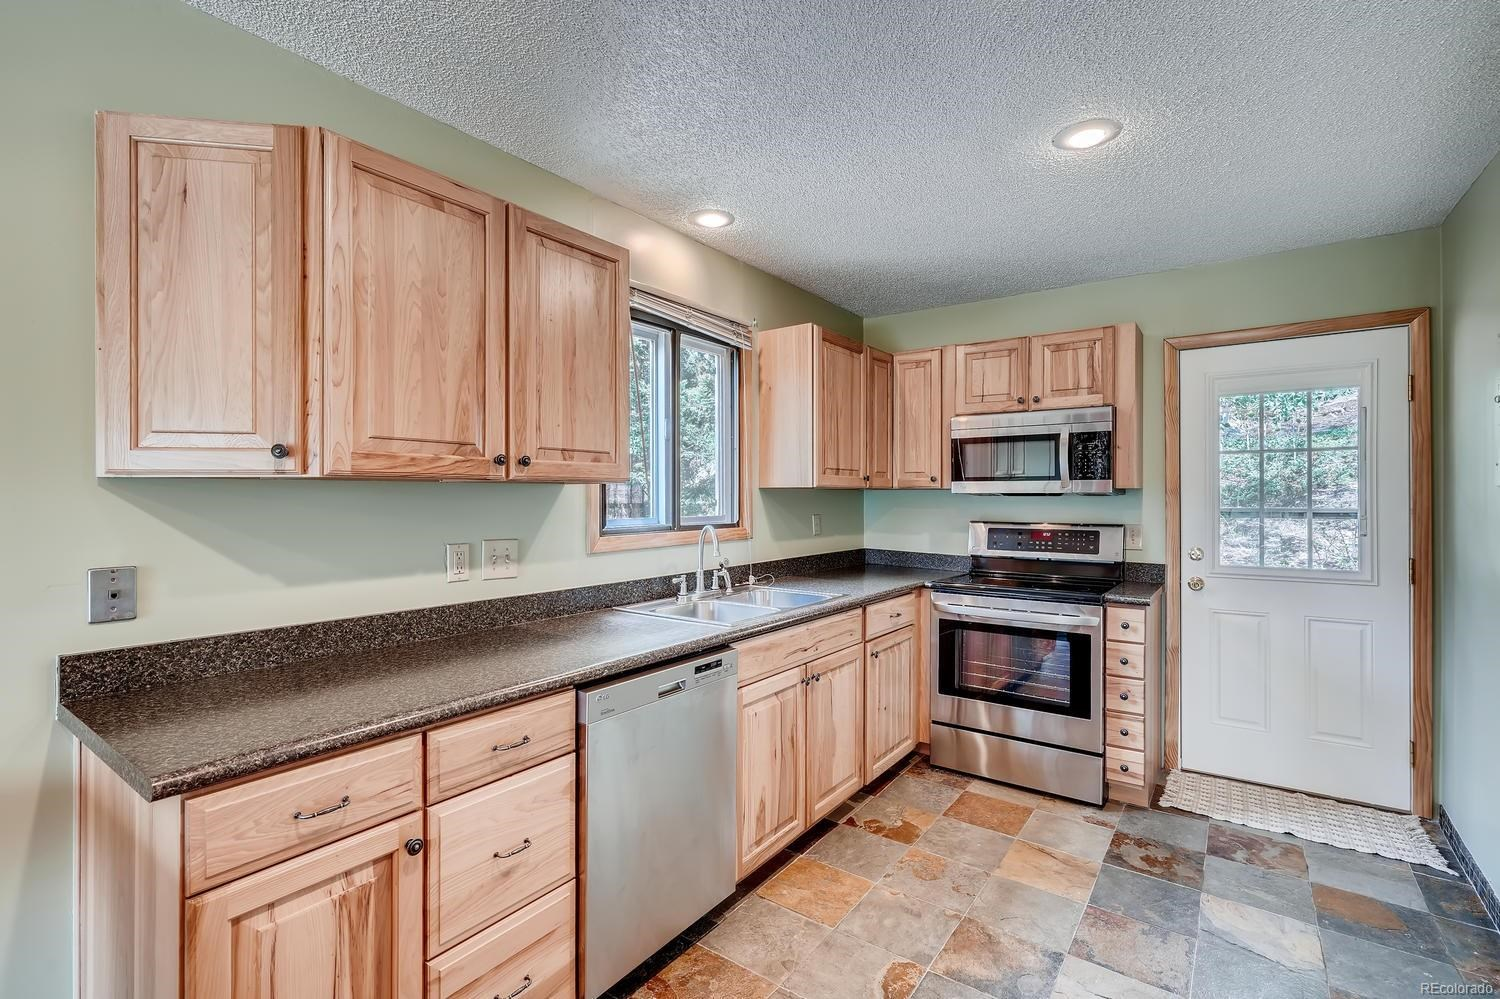 MLS# 8376760 - 5 - 30915 Walter Drive, Conifer, CO 80433